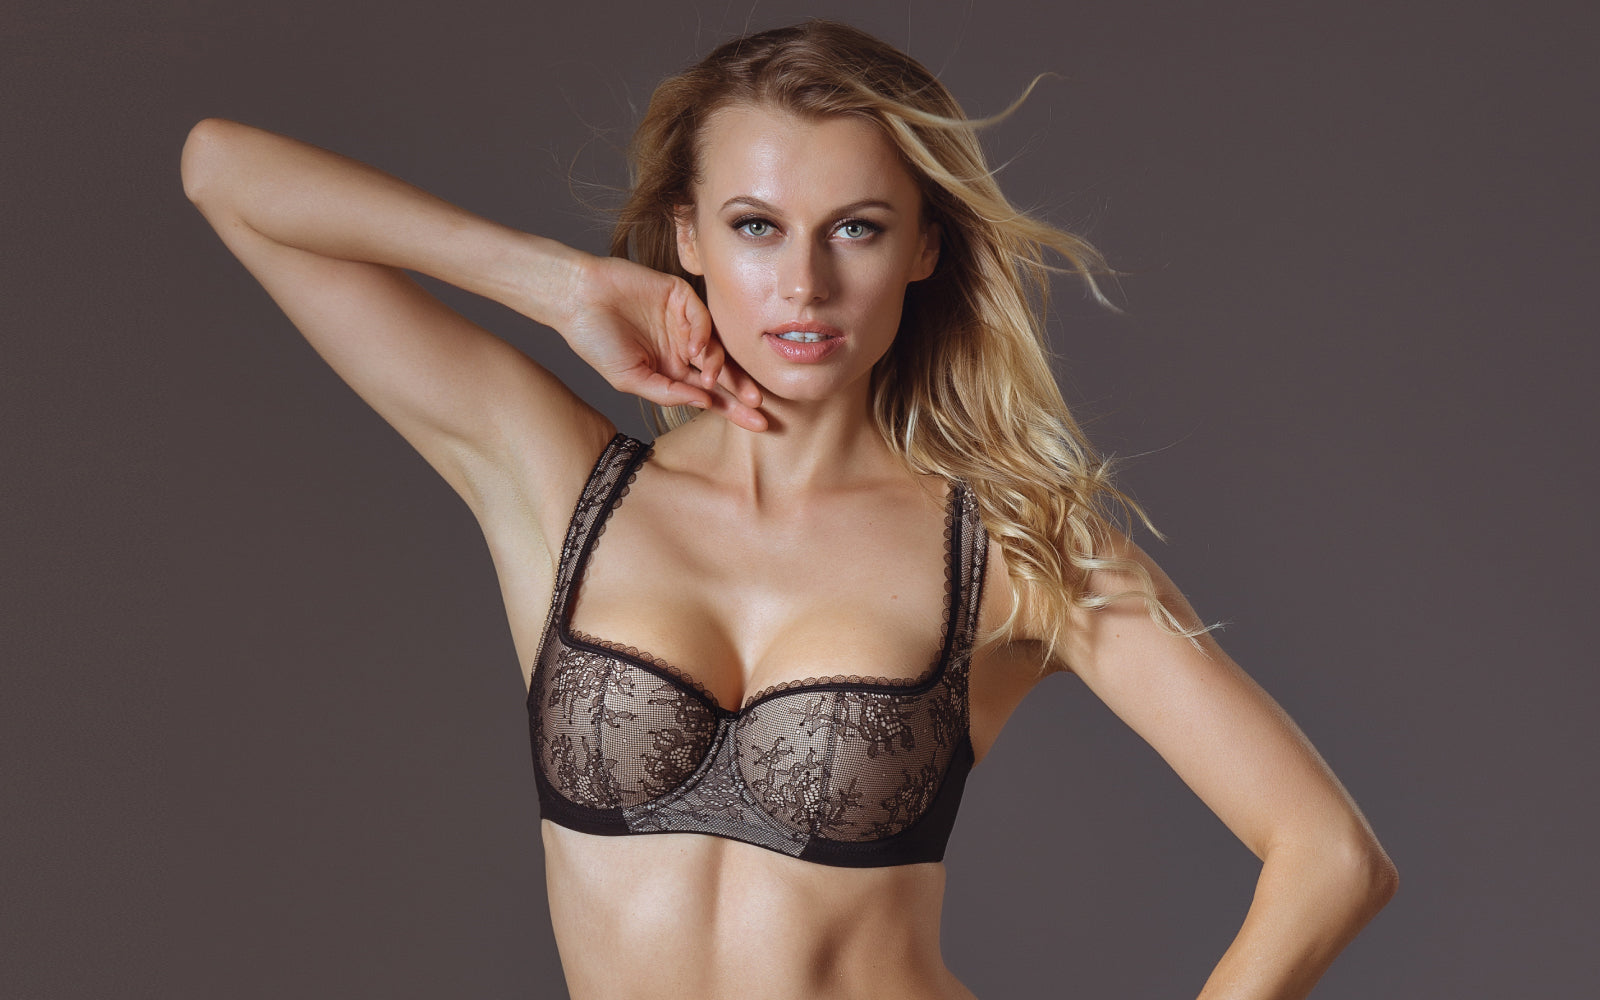 Padded Bra's And Why They Are a Steal!